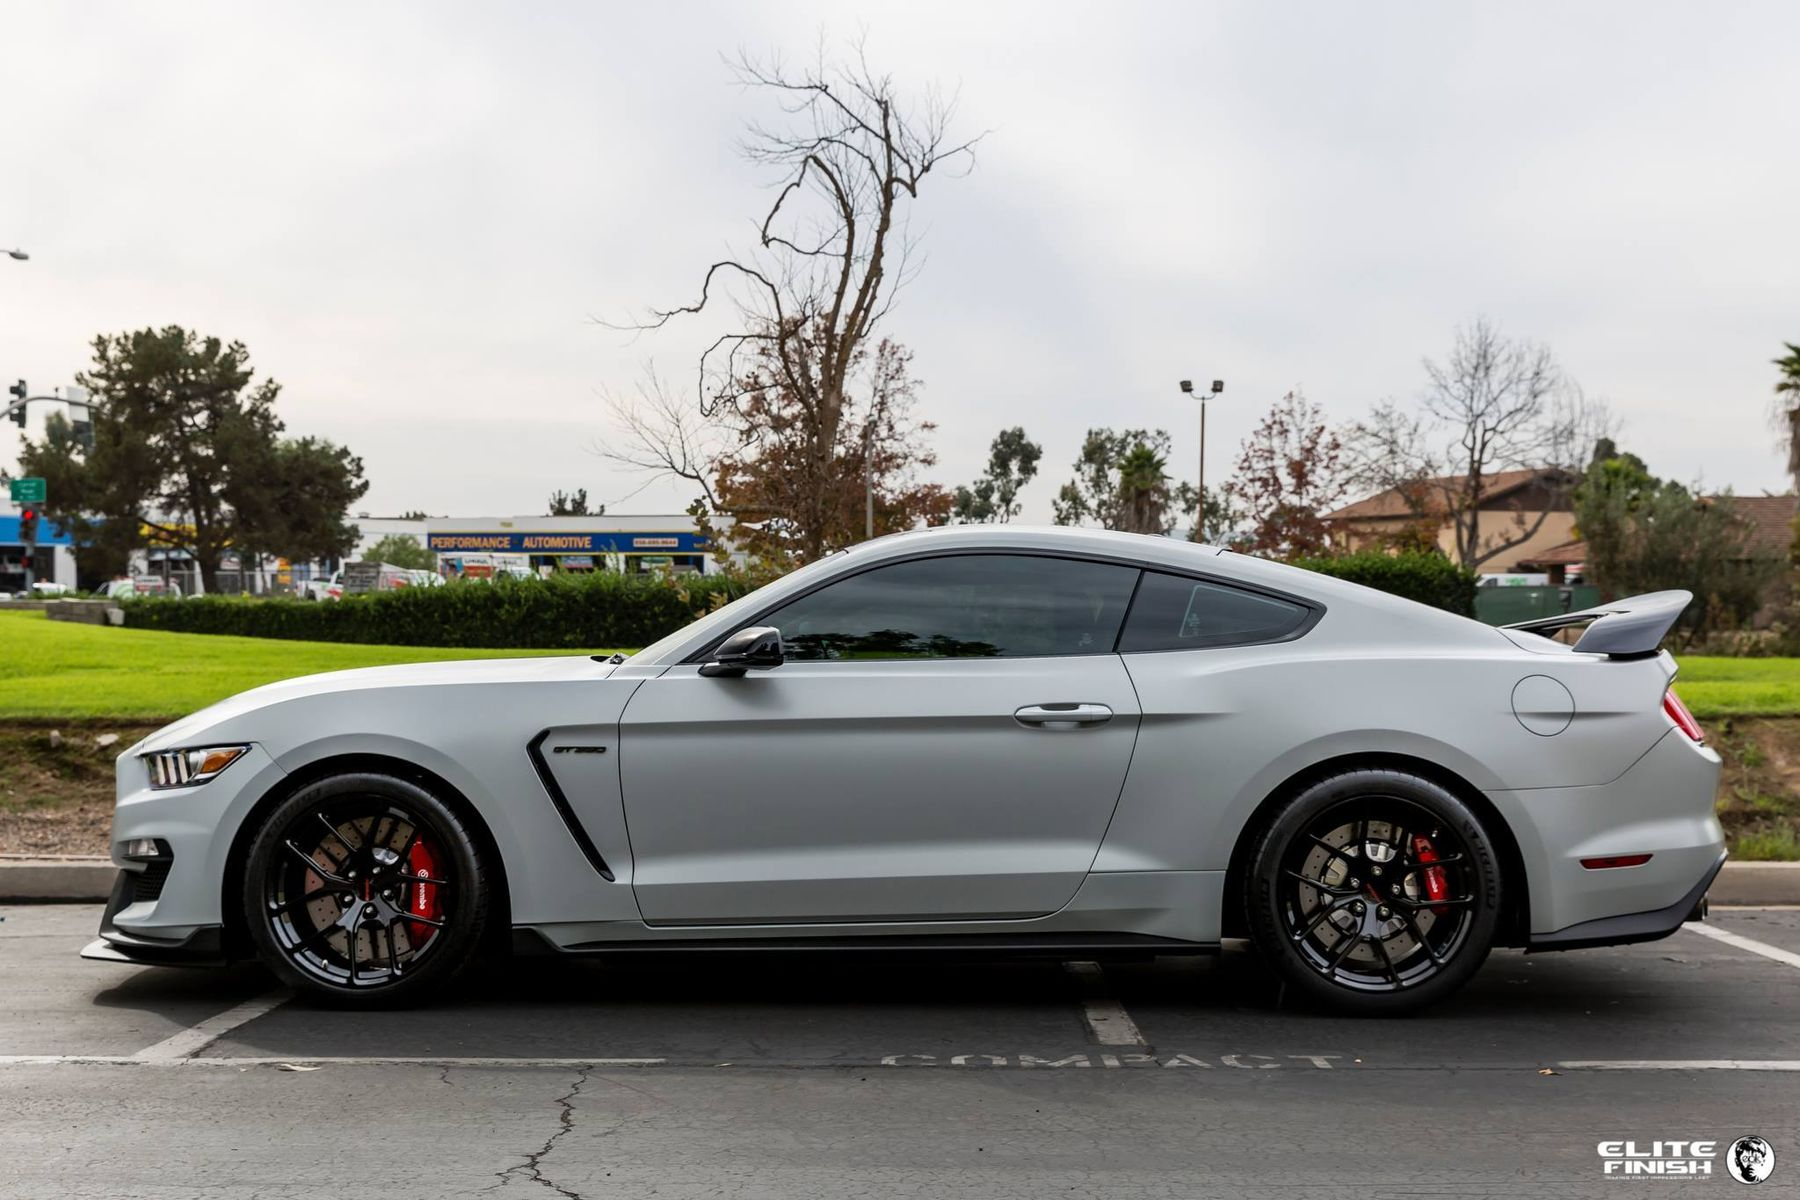 2018 Ford GT350R | Joe Gatt's Ford Mustang GT350R on Forgeline One Piece Forged Monoblock VX1R Wheels